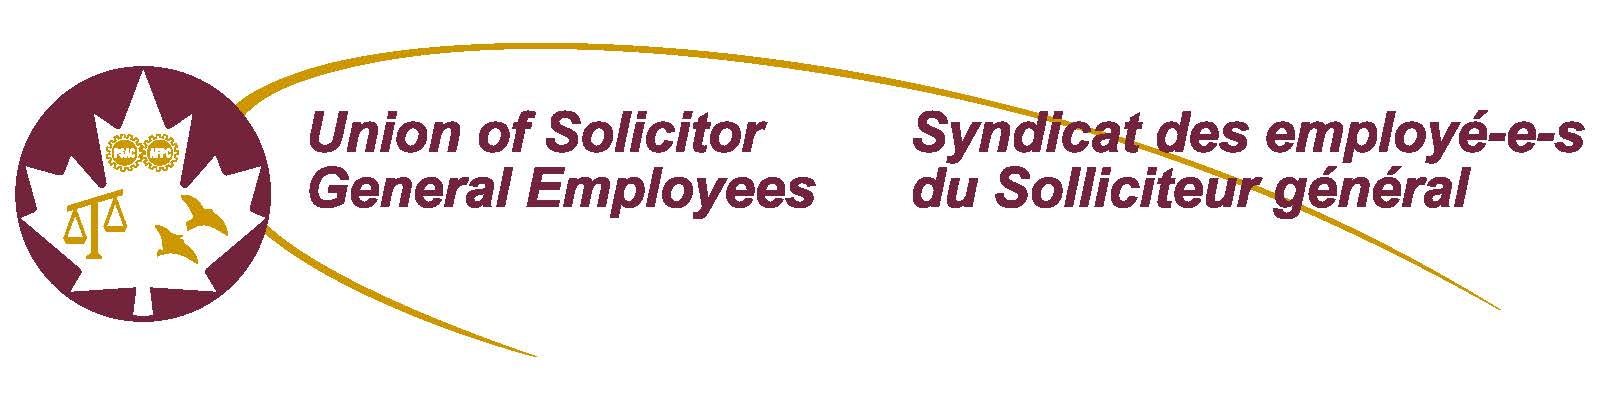 Union of Solicitor General Employees